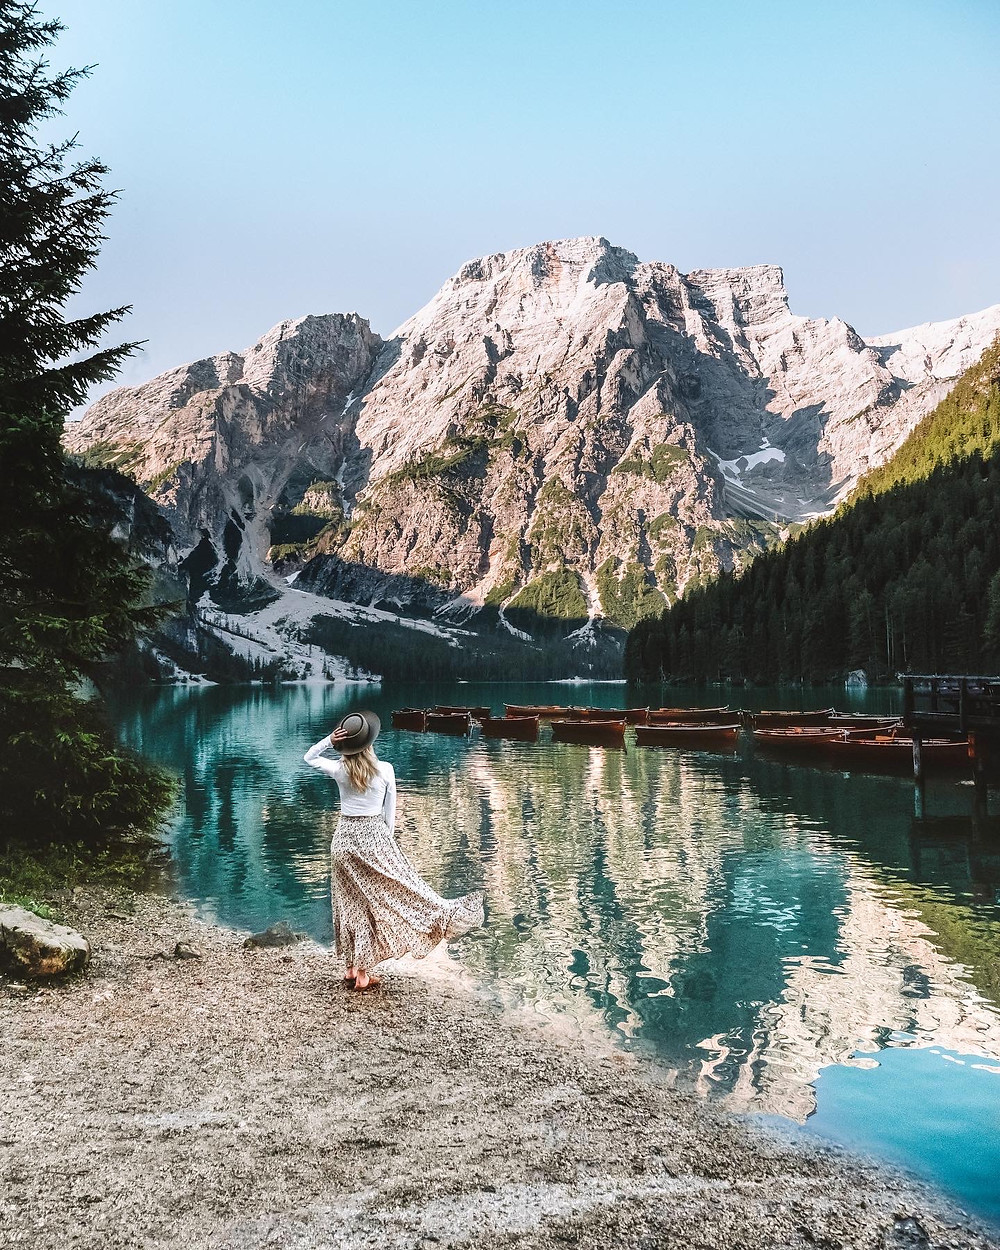 Instagrammable location, Lago Di Braies, Dolomites Italy